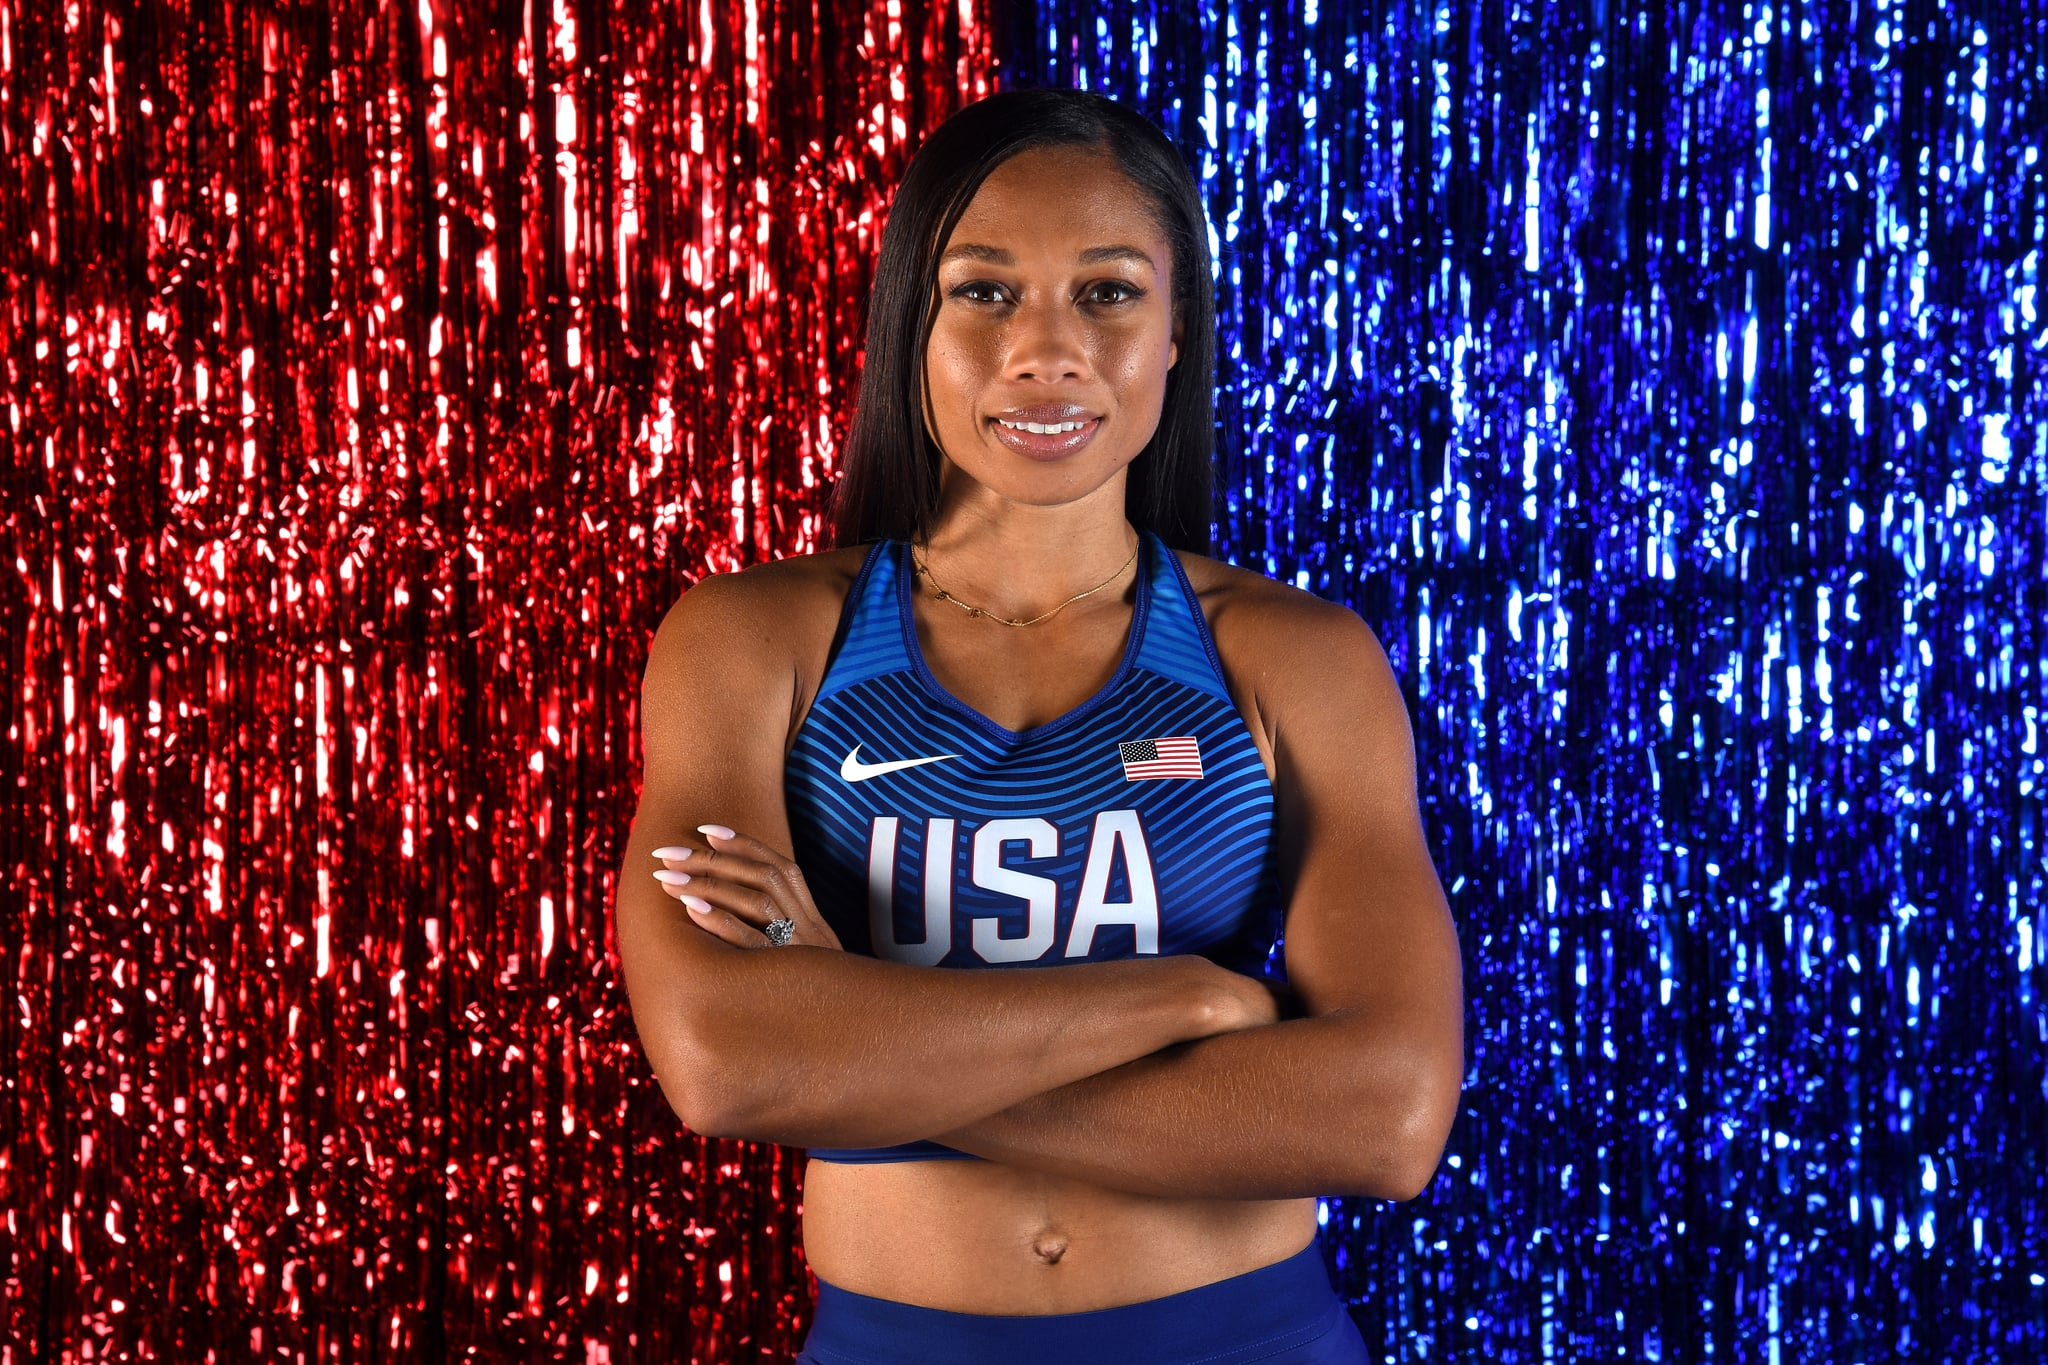 WEST HOLLYWOOD, CALIFORNIA - NOVEMBER 19: Track & field athlete Allyson Felix poses for a portrait during the Team USA Tokyo 2020 Olympics shoot on November 19, 2019 in West Hollywood, California. (Photo by Harry How/Getty Images)